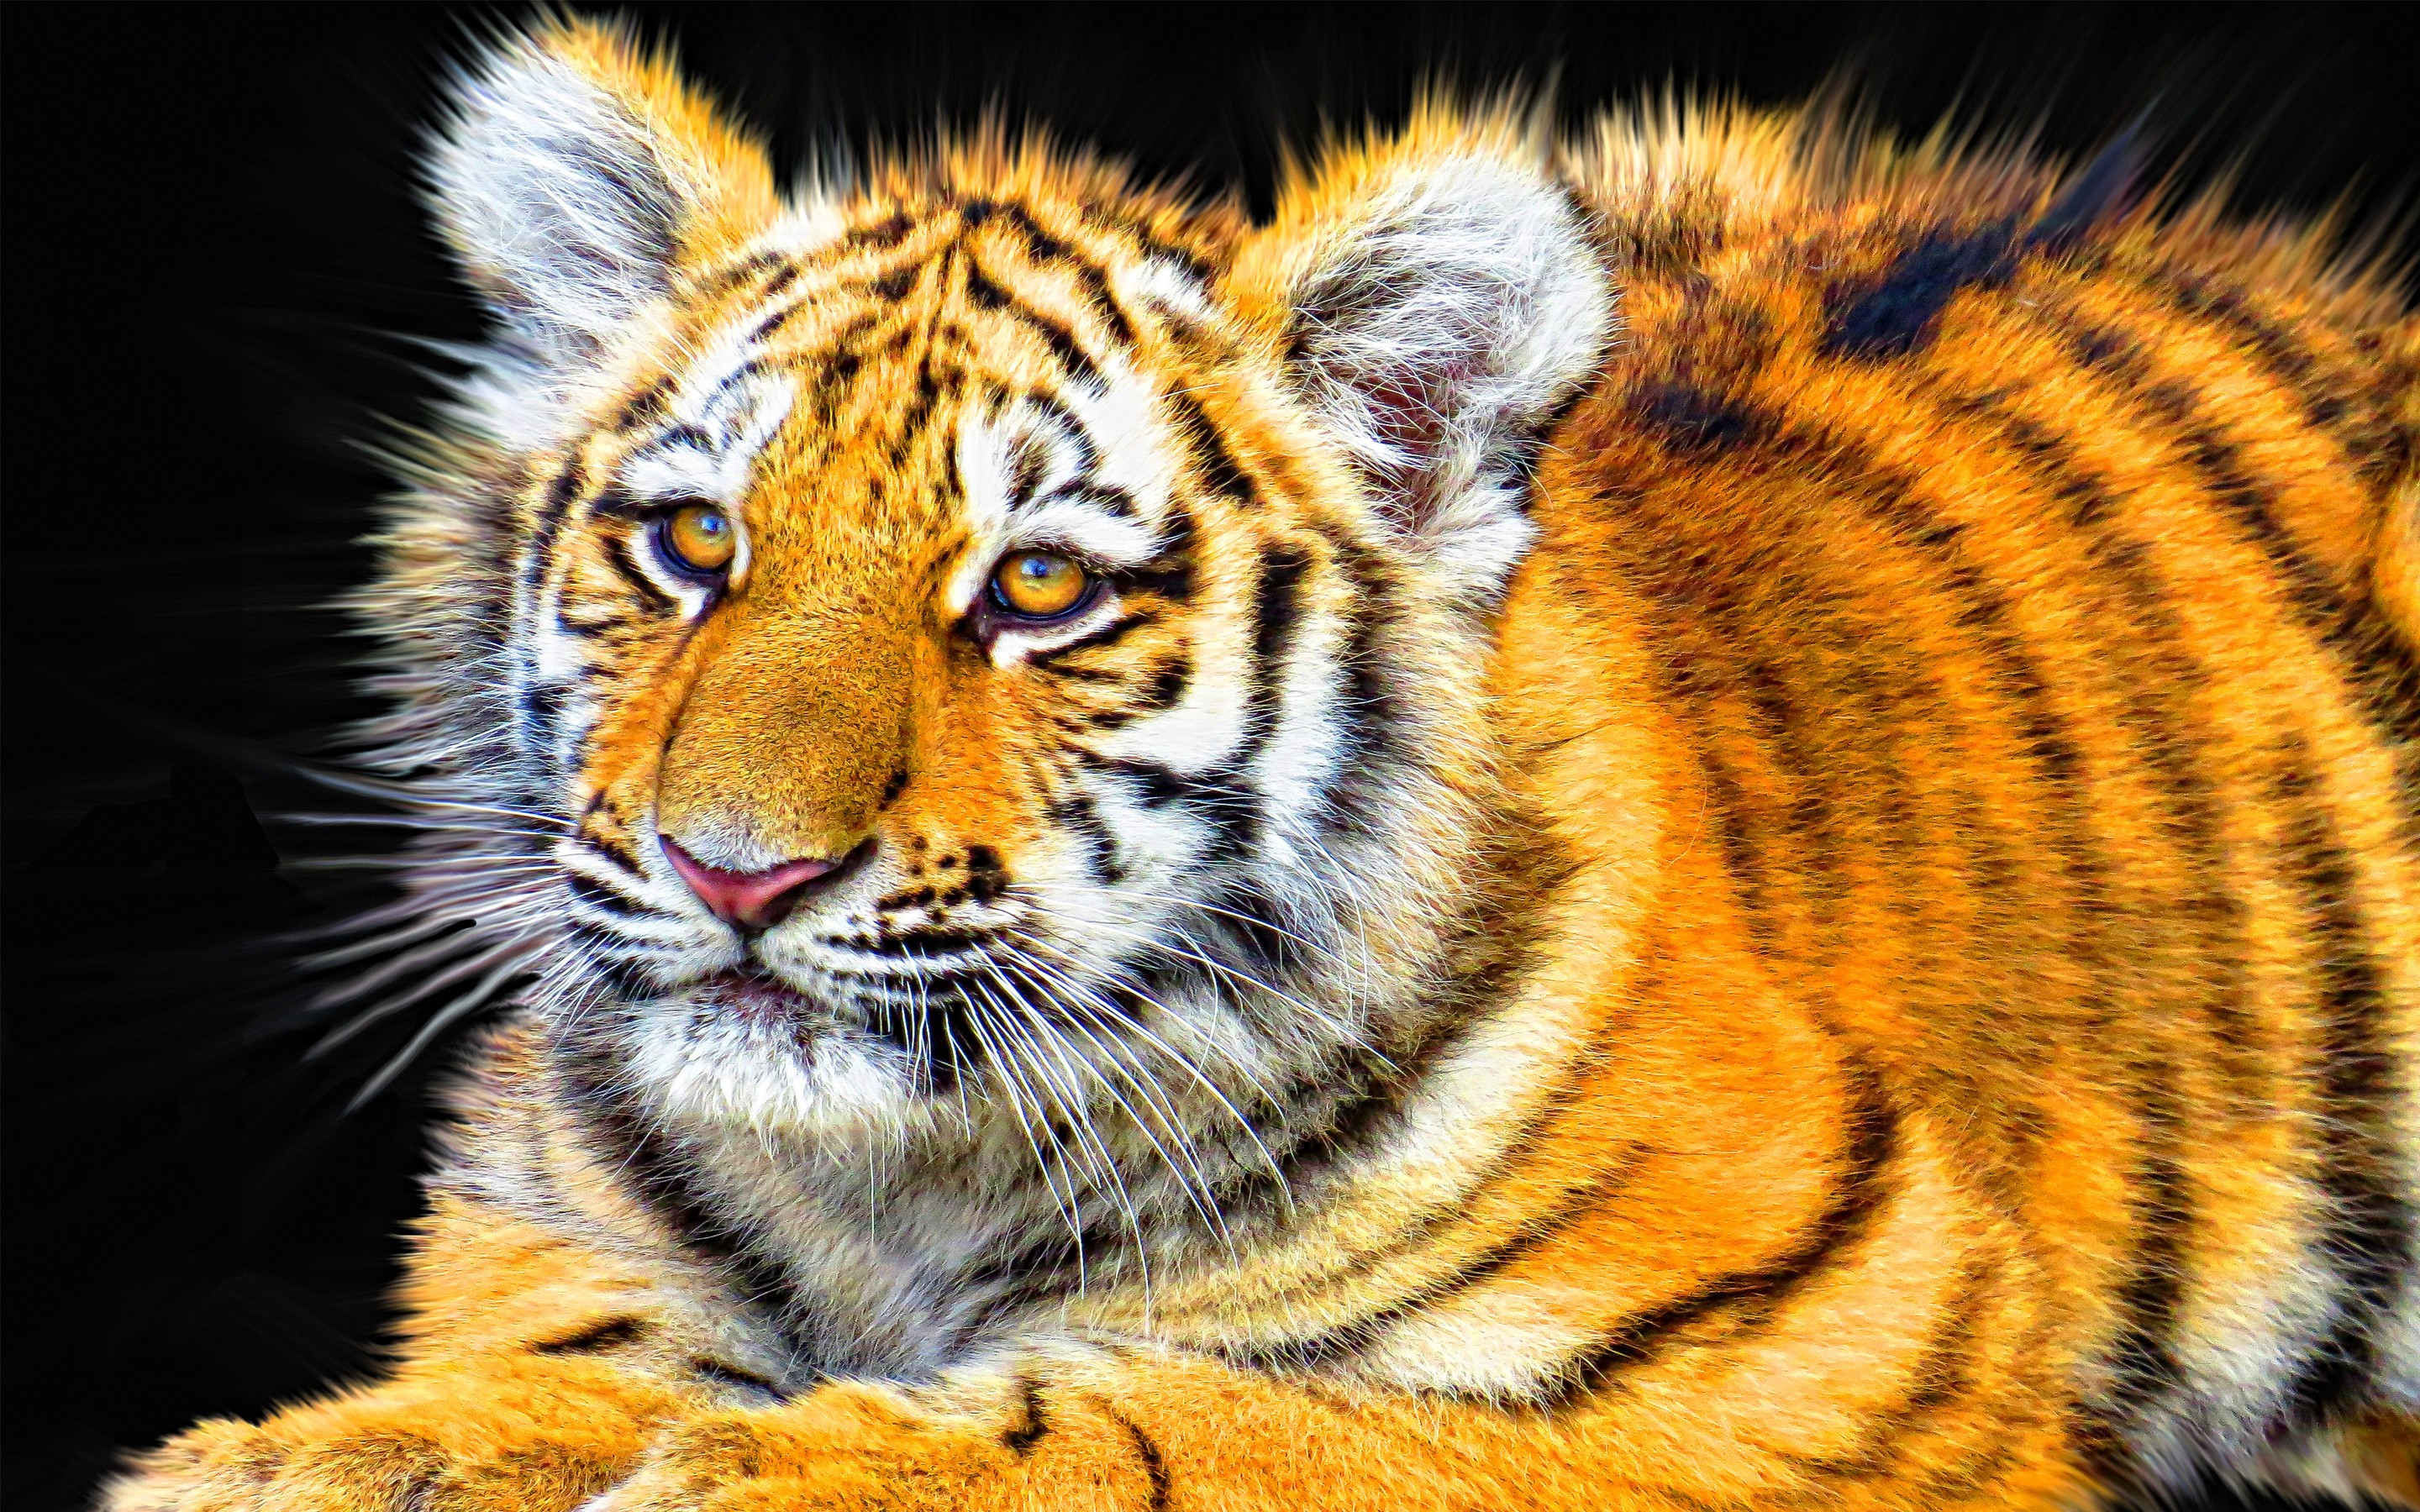 Cute Painting Hd Wallpapers Tiger Cub Wallpapers Hd Wallpapers Id 16806